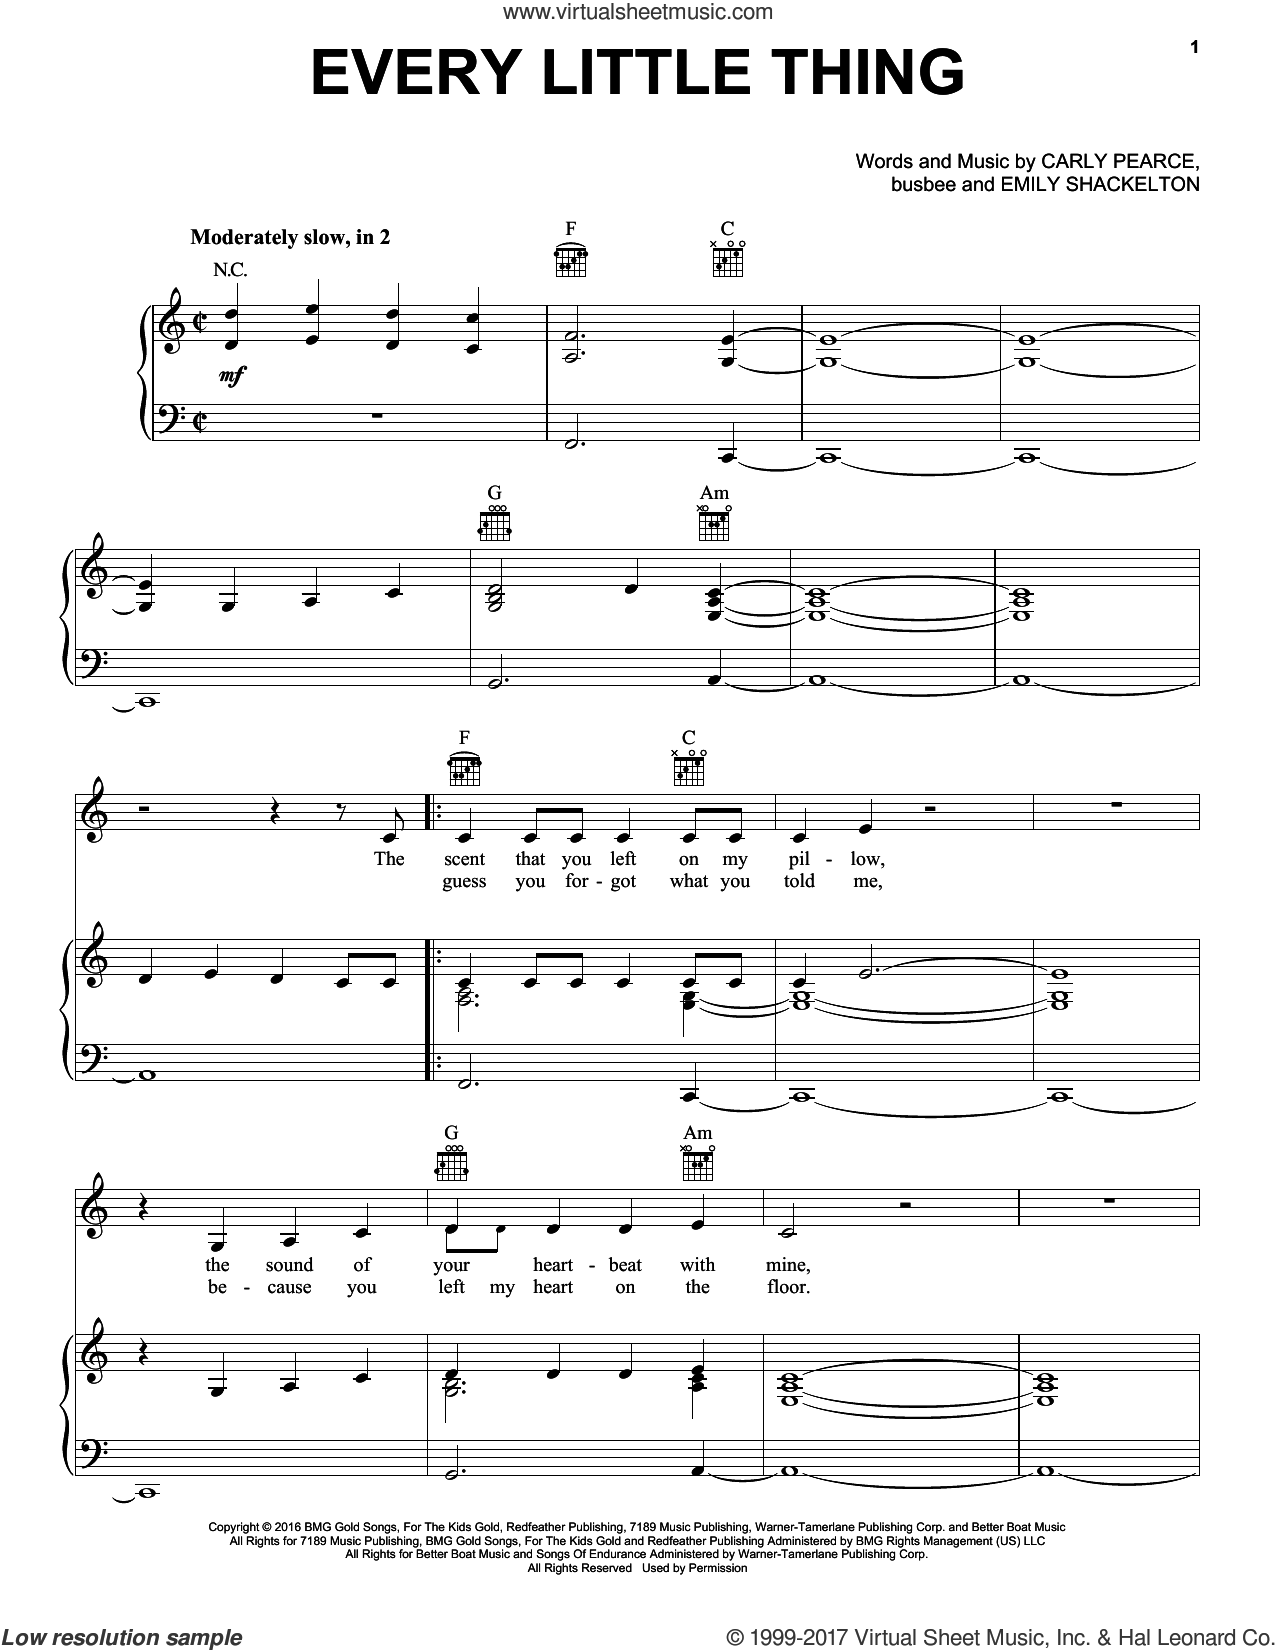 Every Little Thing sheet music for voice, piano or guitar by Carly Pearce, busbee and Emily Shackelton, intermediate skill level